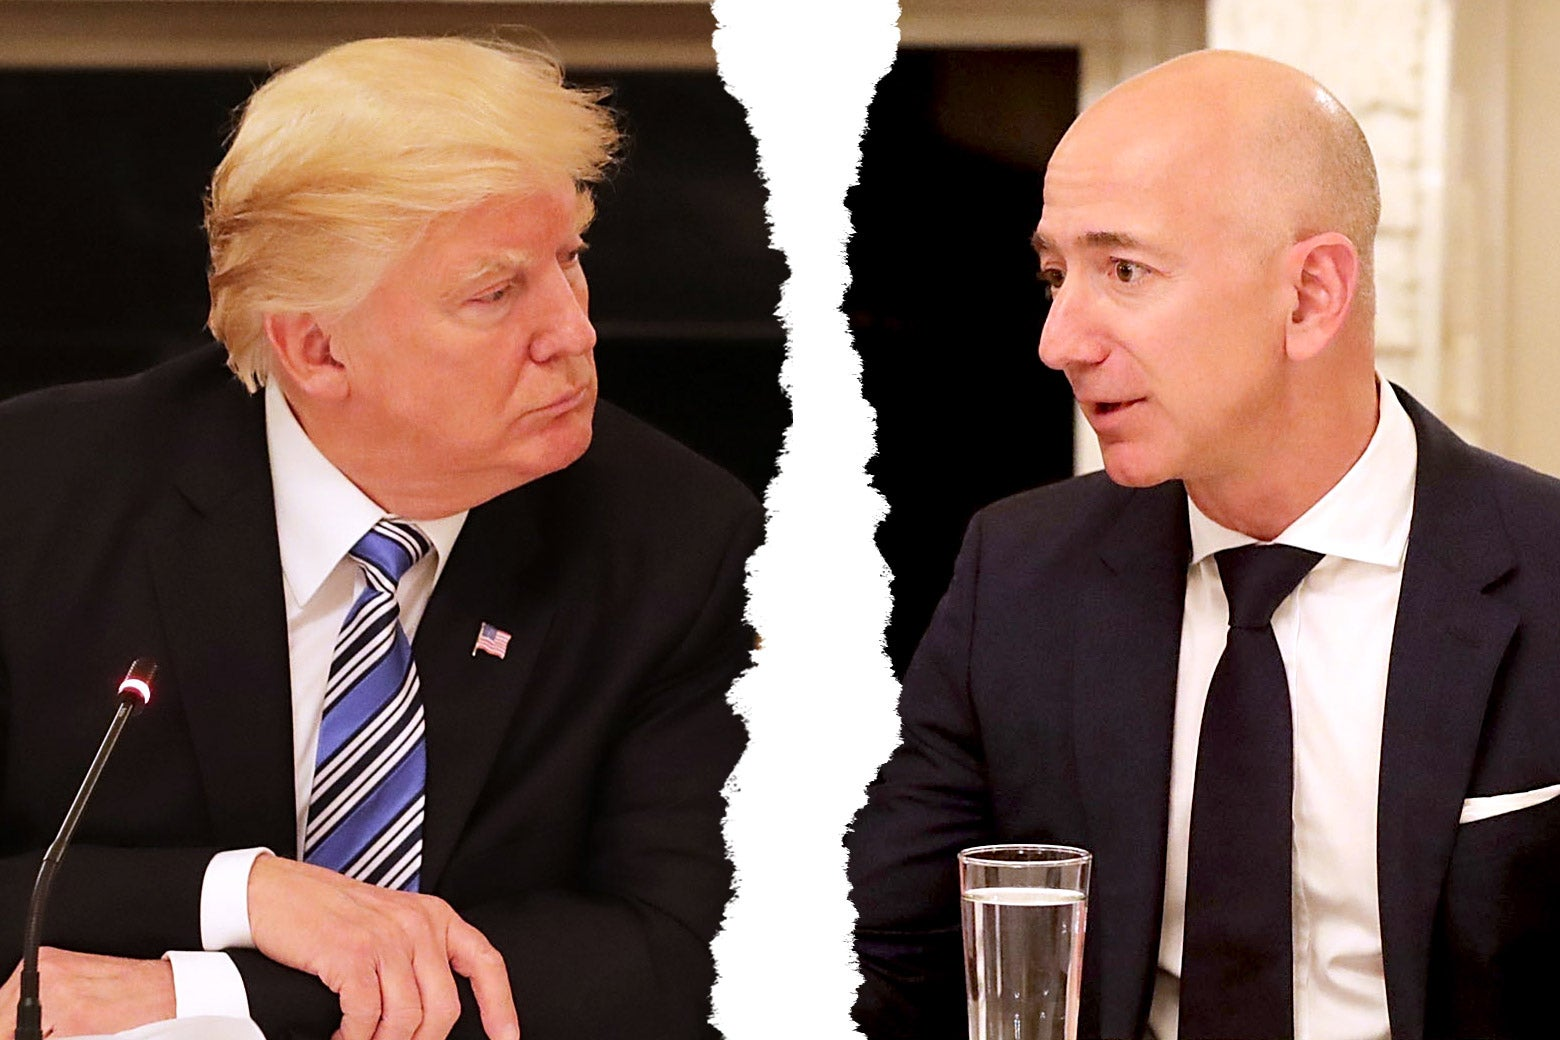 President Donald Trump and Amazon CEO Jeff Bezos attend a meeting of the American Technology Council in the State Dining Room of the White House June 19, 2017 in Washington, DC.